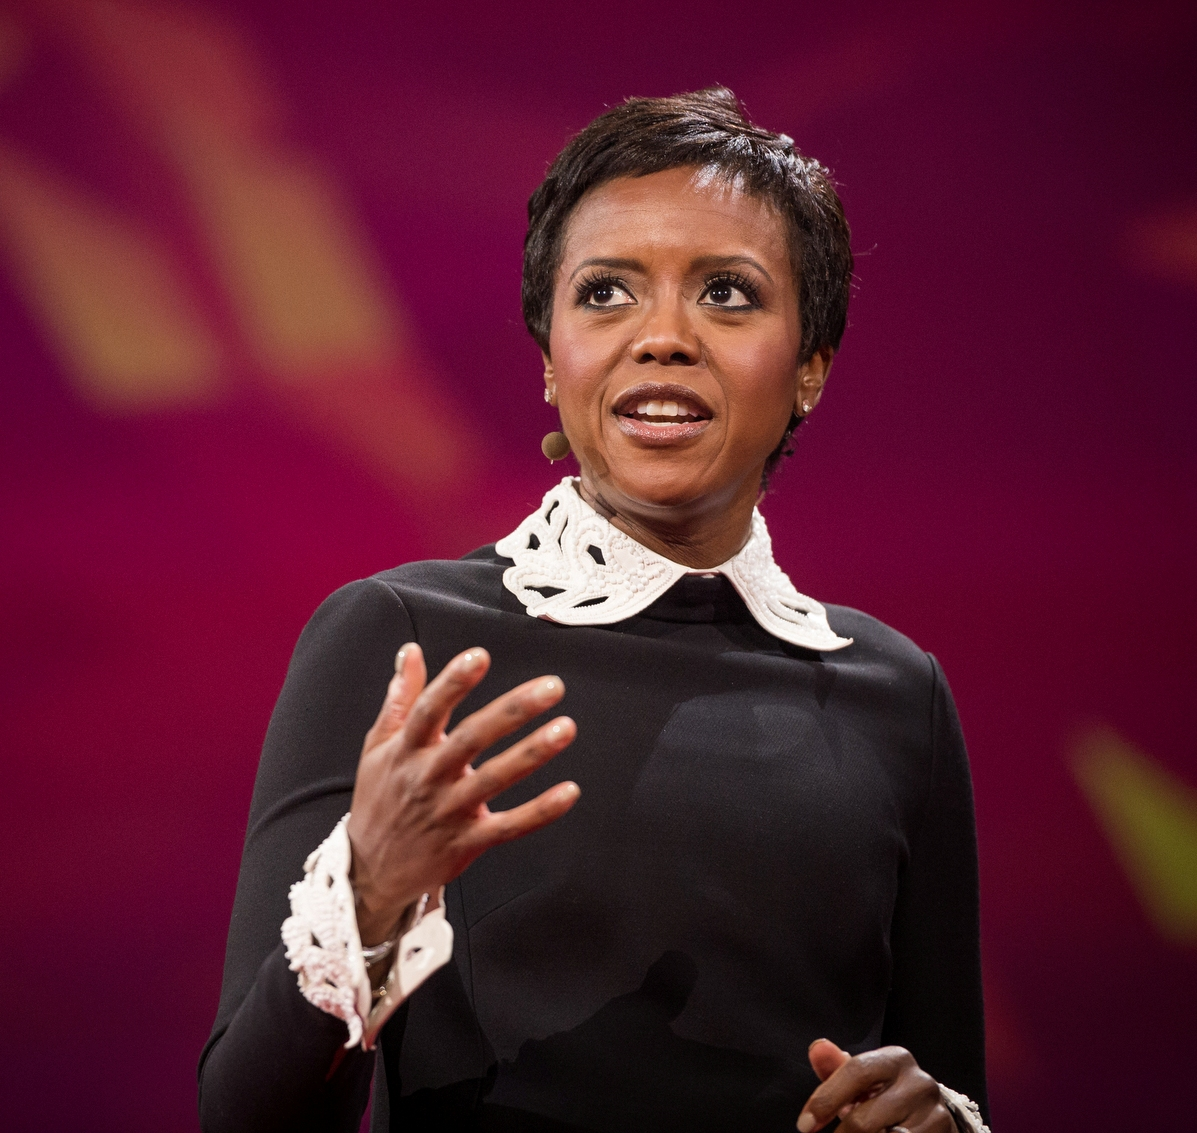 Mellody Hobson at TED2014. The Next Chapter, Session 10 - Passion, March 17-21, 2014, Vancouver Convention Center, Vancouver, Canada. Photo: James Duncan Davidson